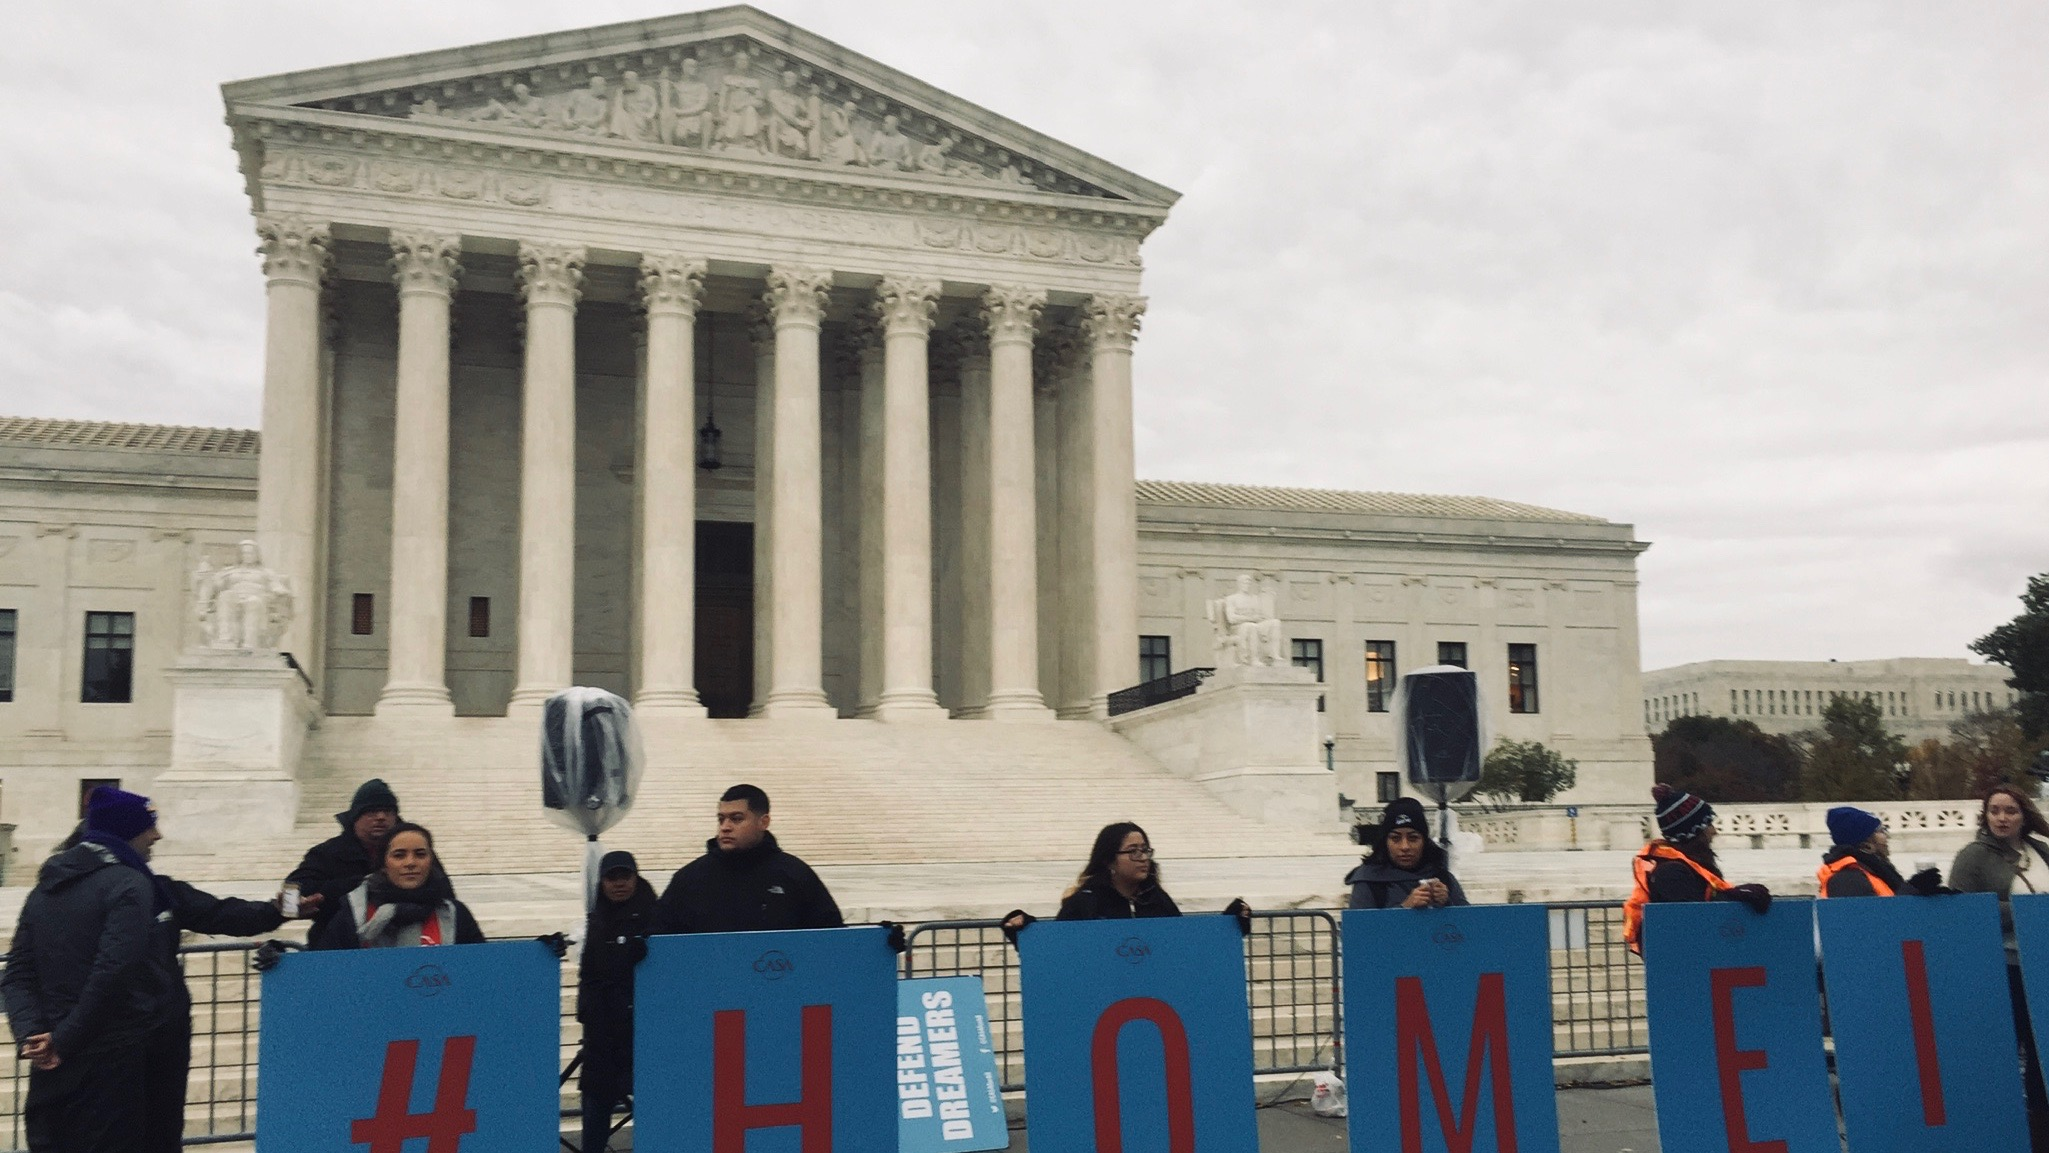 DACA recipients in front of SCOTUS/